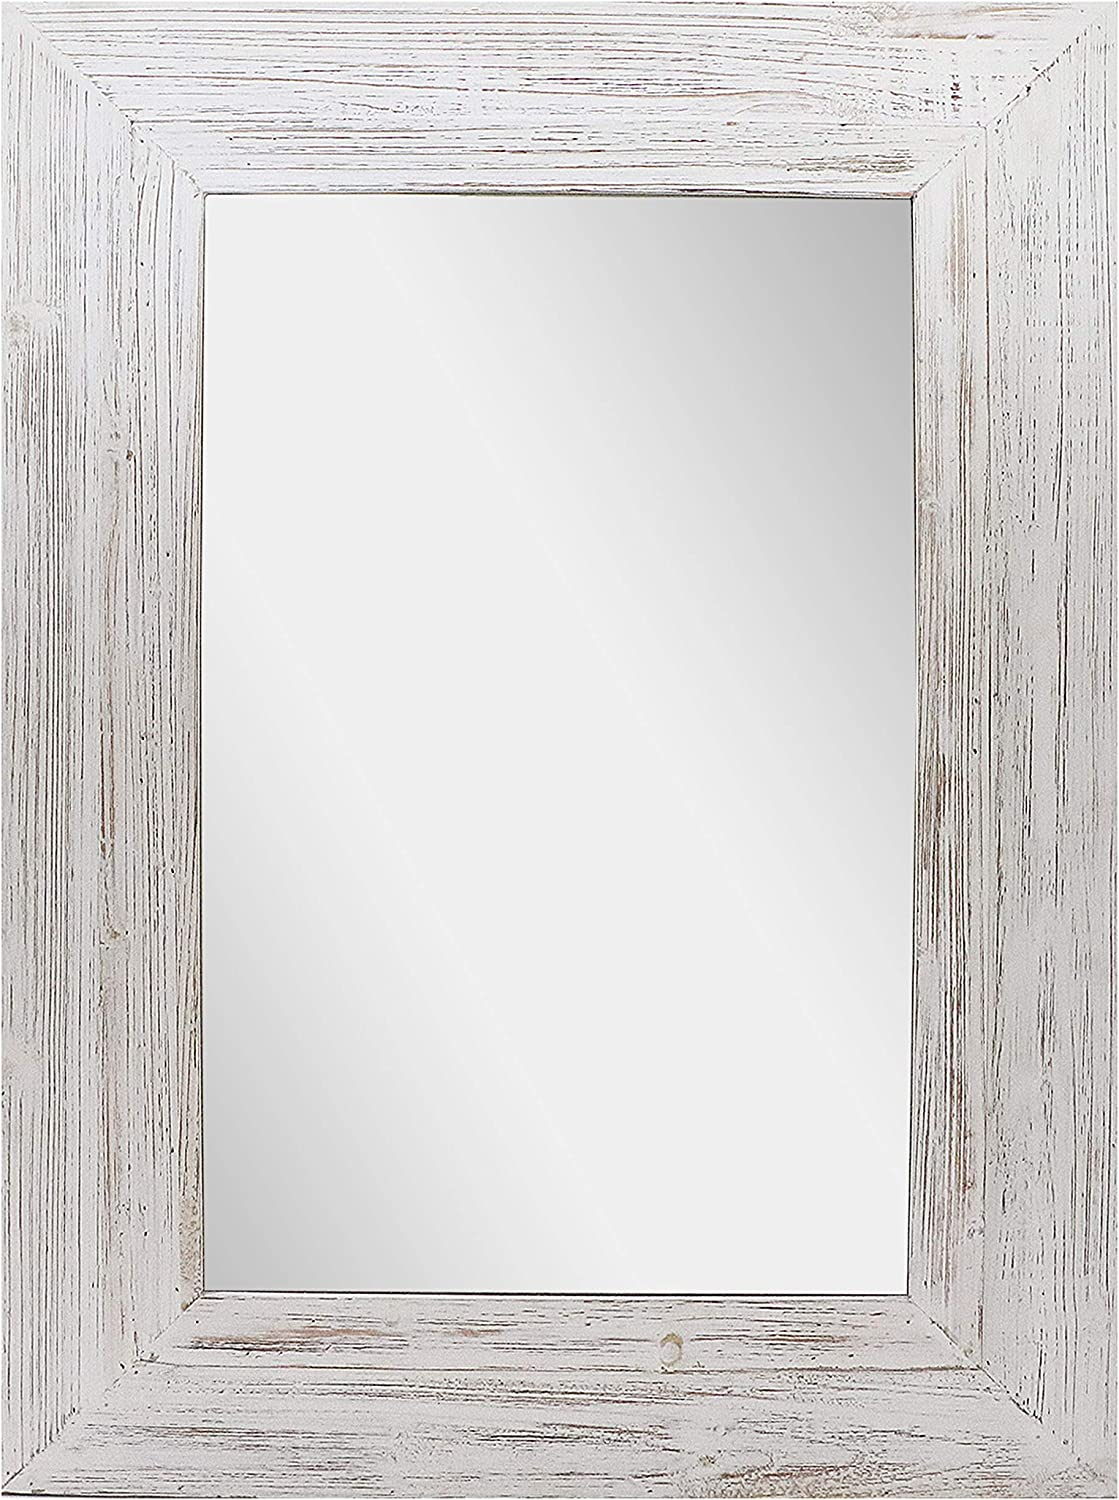 "Barnyard Designs Decorative Whitewashed Wood Frame Wall Mirror, Large Rustic Farmhouse Mirror Decor, Vertical or Horizontal Hanging, for Bathroom Vanity, Living Room or Bedroom, 32"" x 24"""